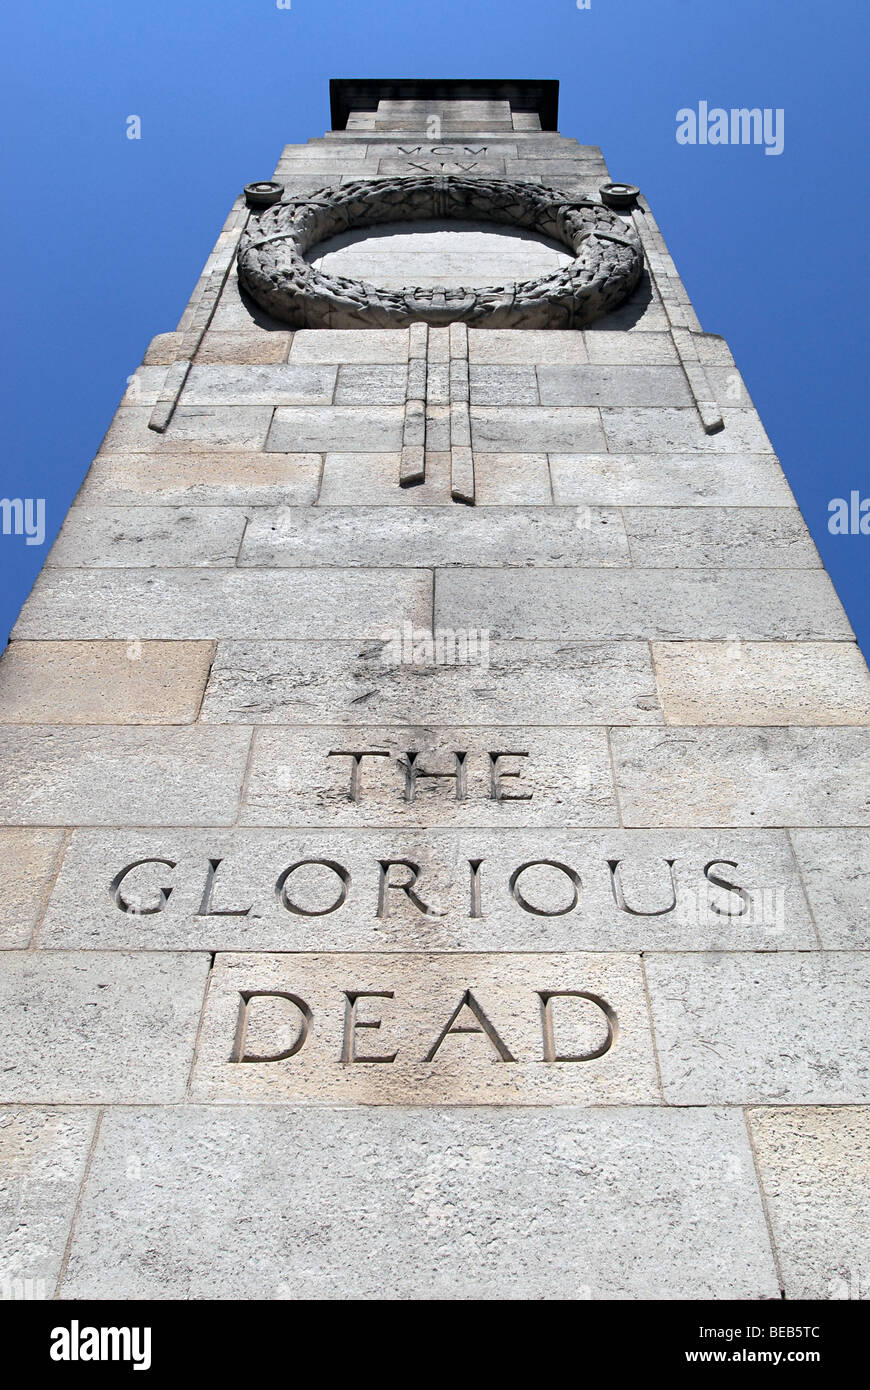 The Glorious Dead Monument, London - Stock Image